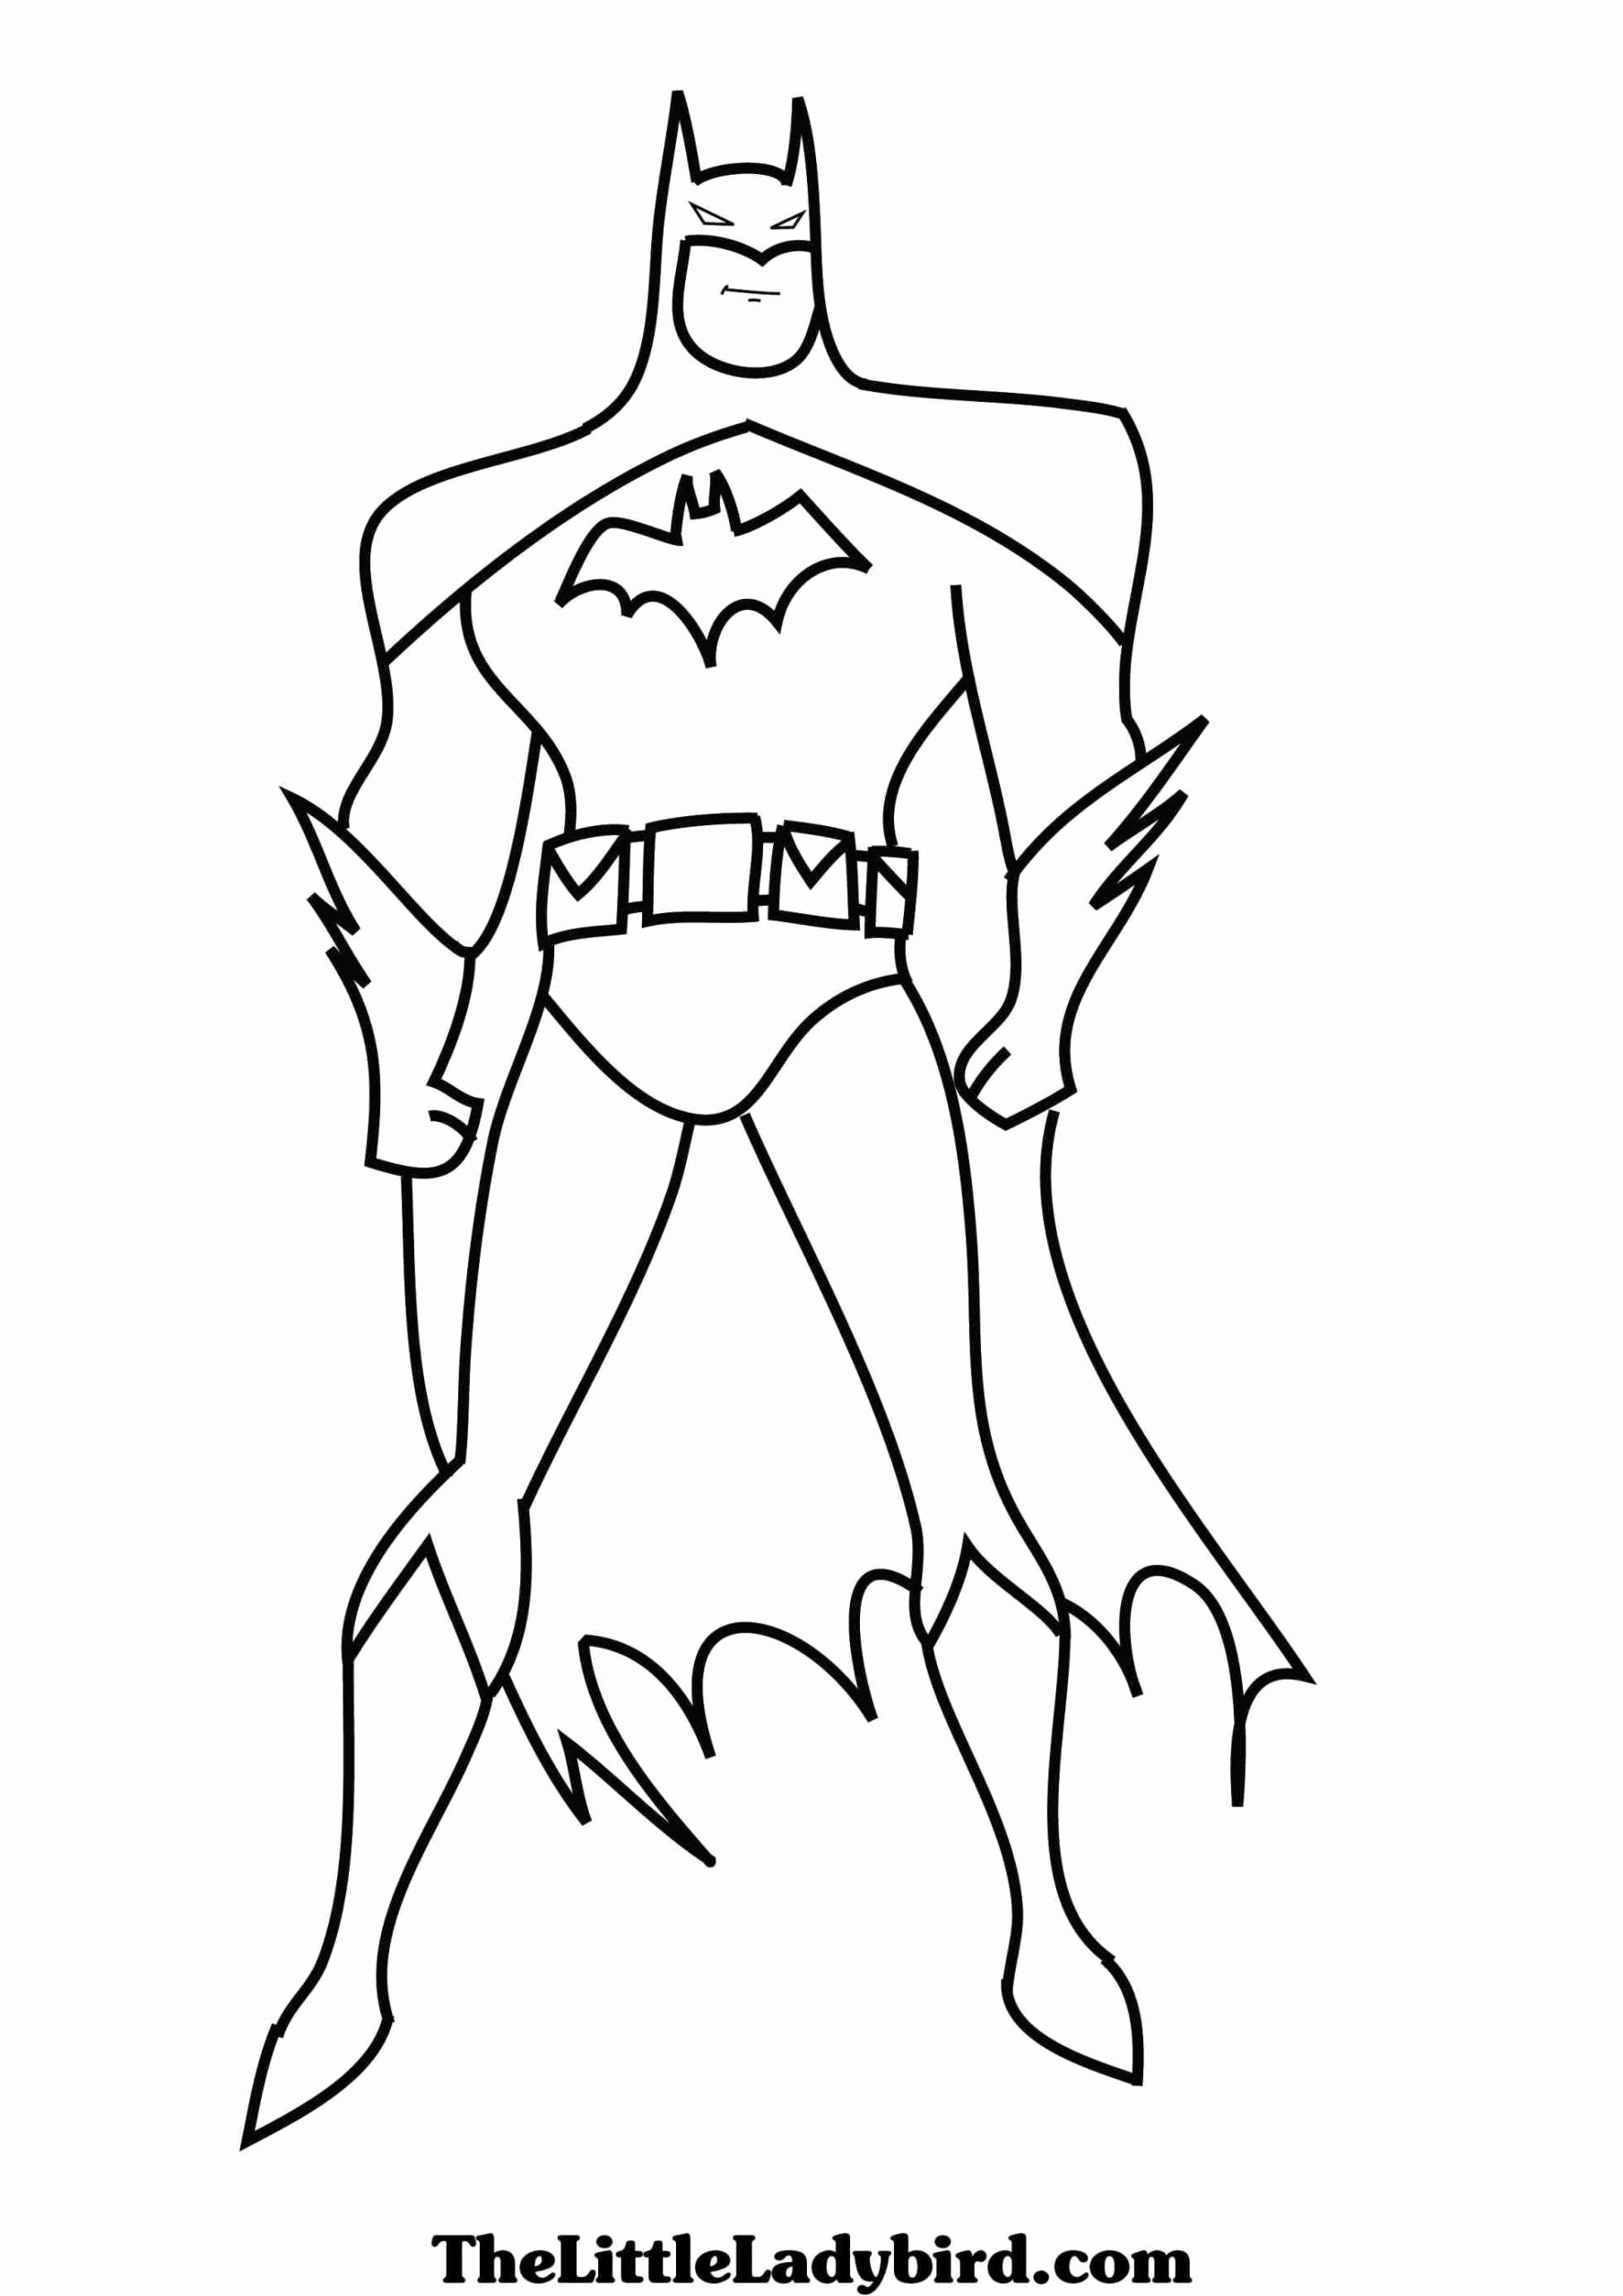 Superhero Printable Coloring Pages For Kids Superhero Coloring Pages Superman Coloring Pages Superhero Coloring